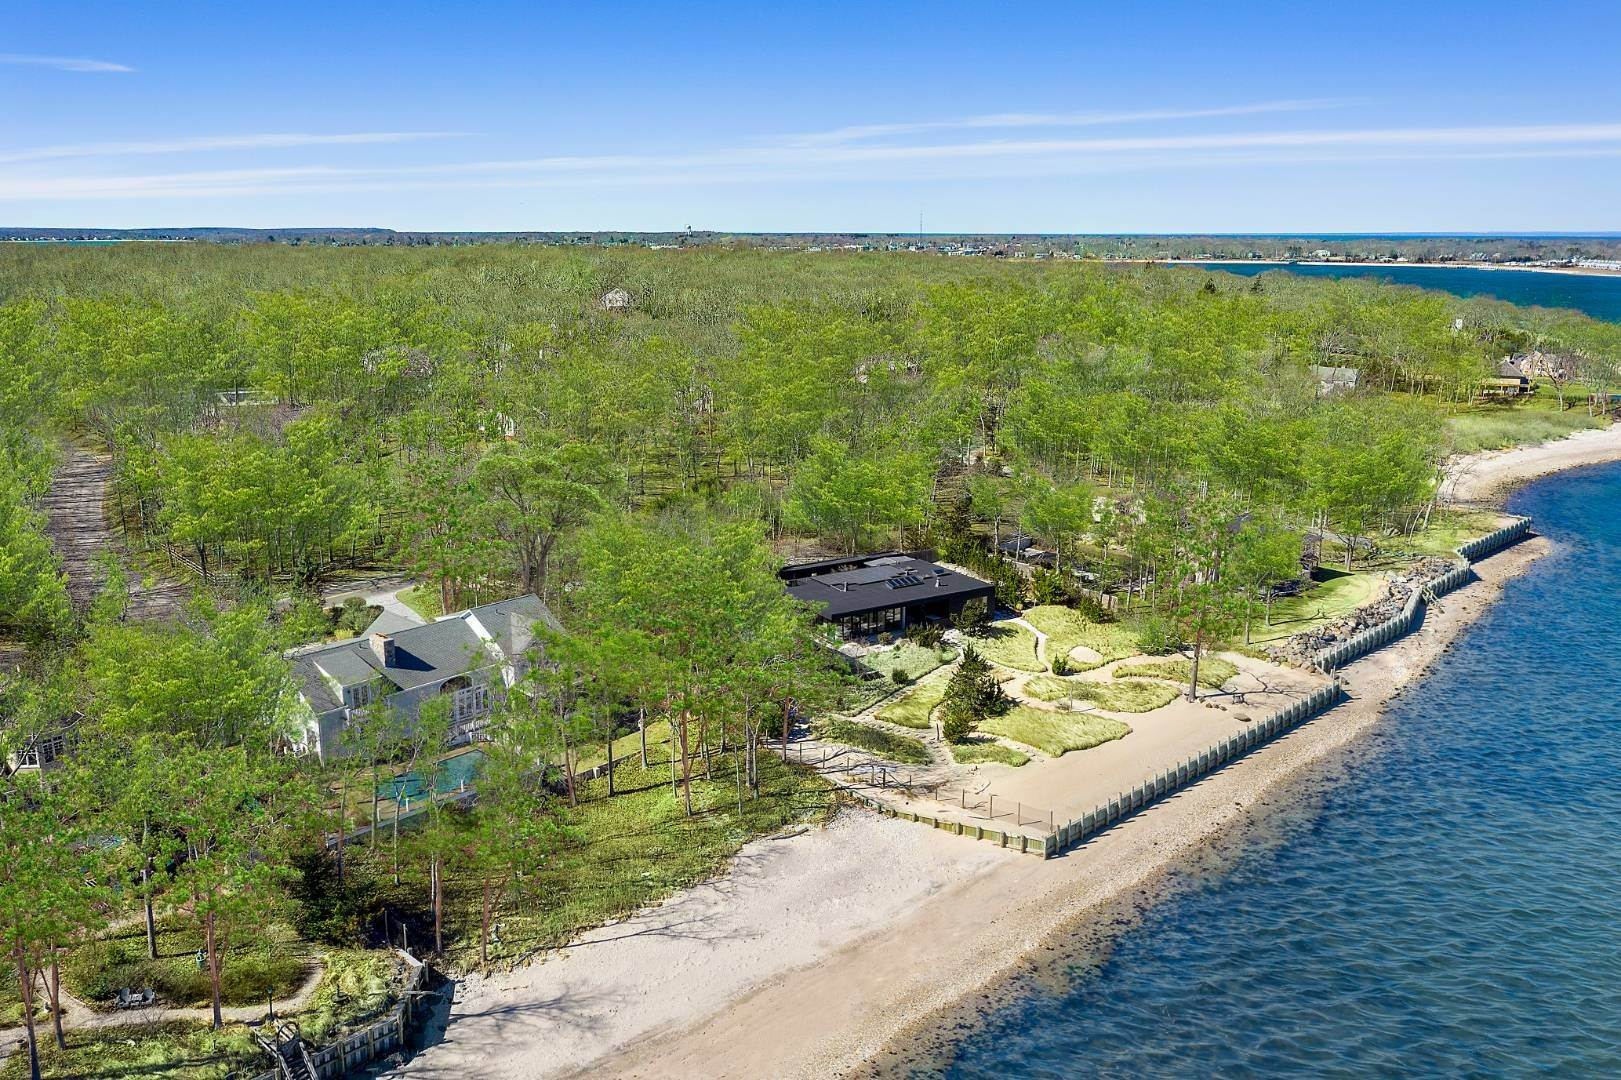 Single Family Home for Sale at Shelter Island Gardiners Bay Beach House With Pool 72 Gardiners Bay Drive, Shelter Island Heights, NY 11964